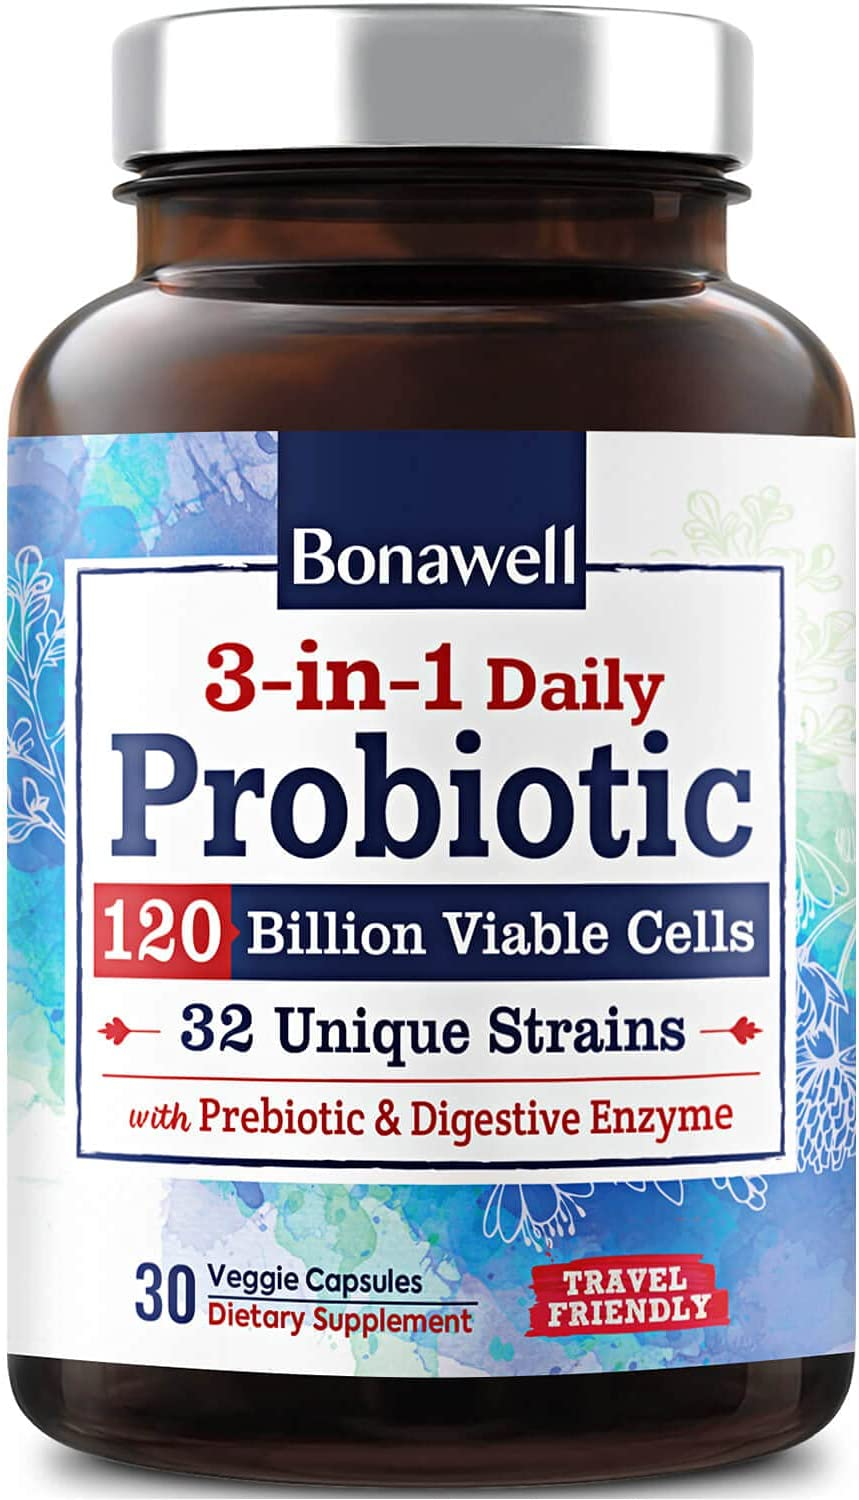 Bonawell 3-in-1 Daily Probiotics 120 Billion CFU 32 Strains with Organic Soluble Prebiotic, Natural Digestive Enzyme for Gut Health, Digestion & Immunity, Shelf-Stable Delayed-Release, 30 Veggie Caps: Health & Personal Care